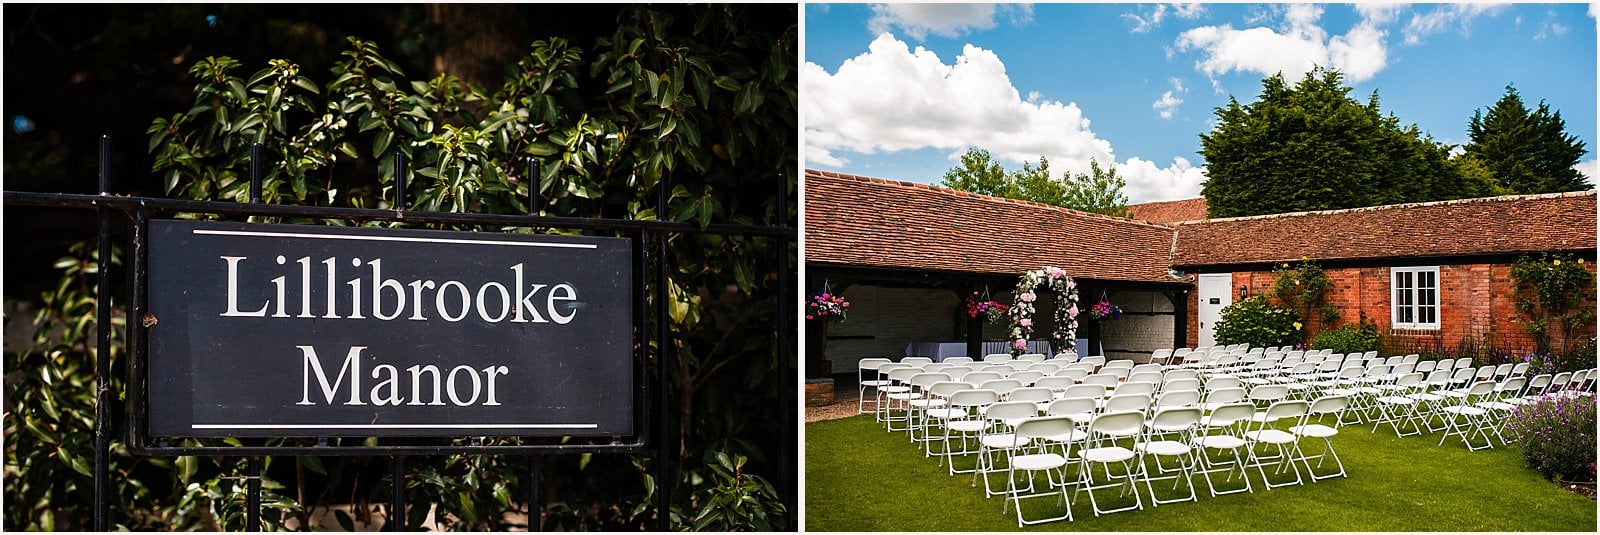 Beautiful Lillibrooke Manor Wedding - Ksenia & Iain 12